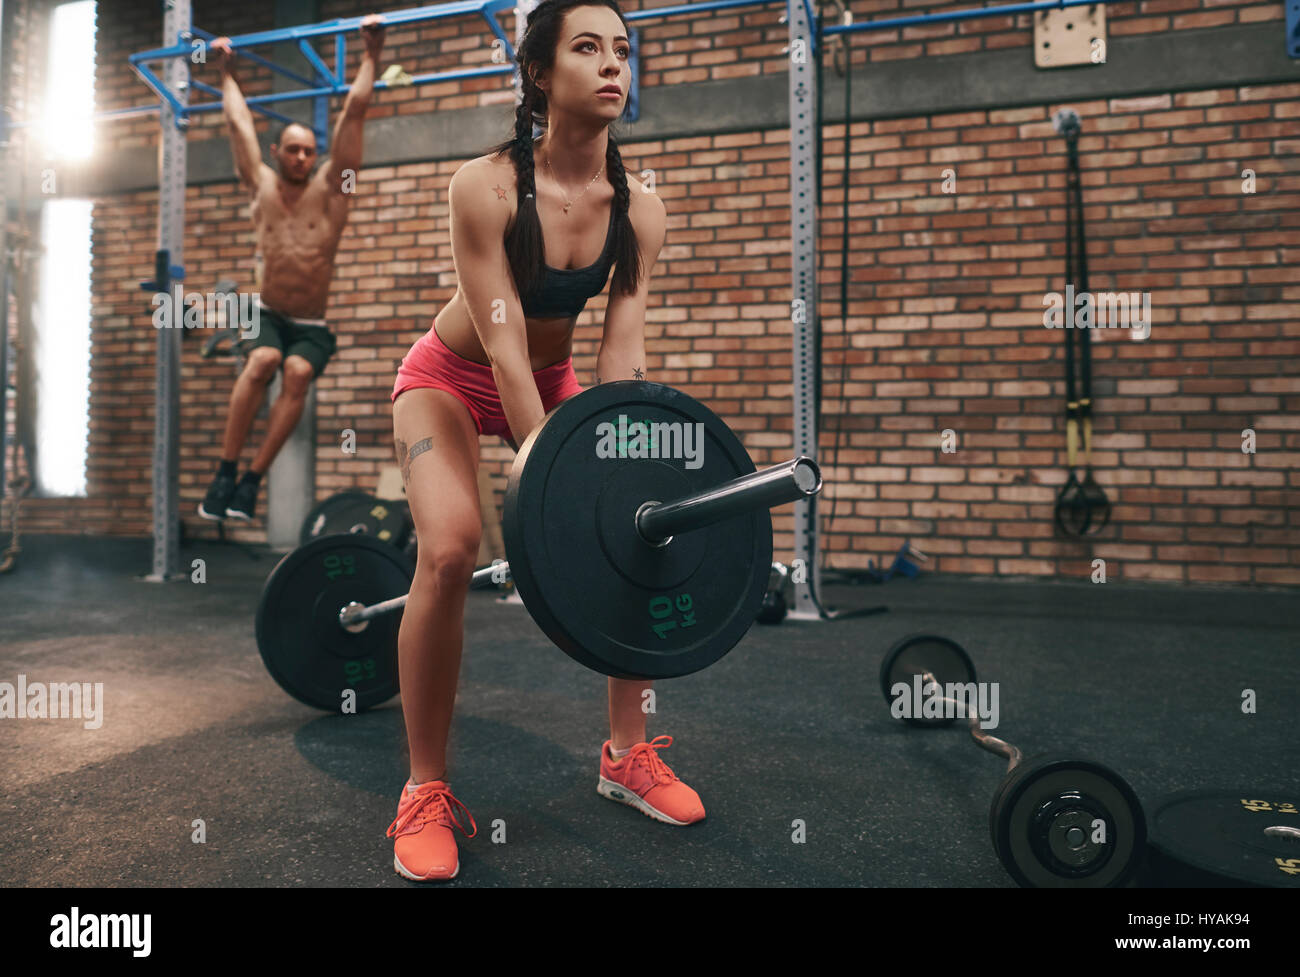 Femme préparez à soulever barbell in gym Photo Stock